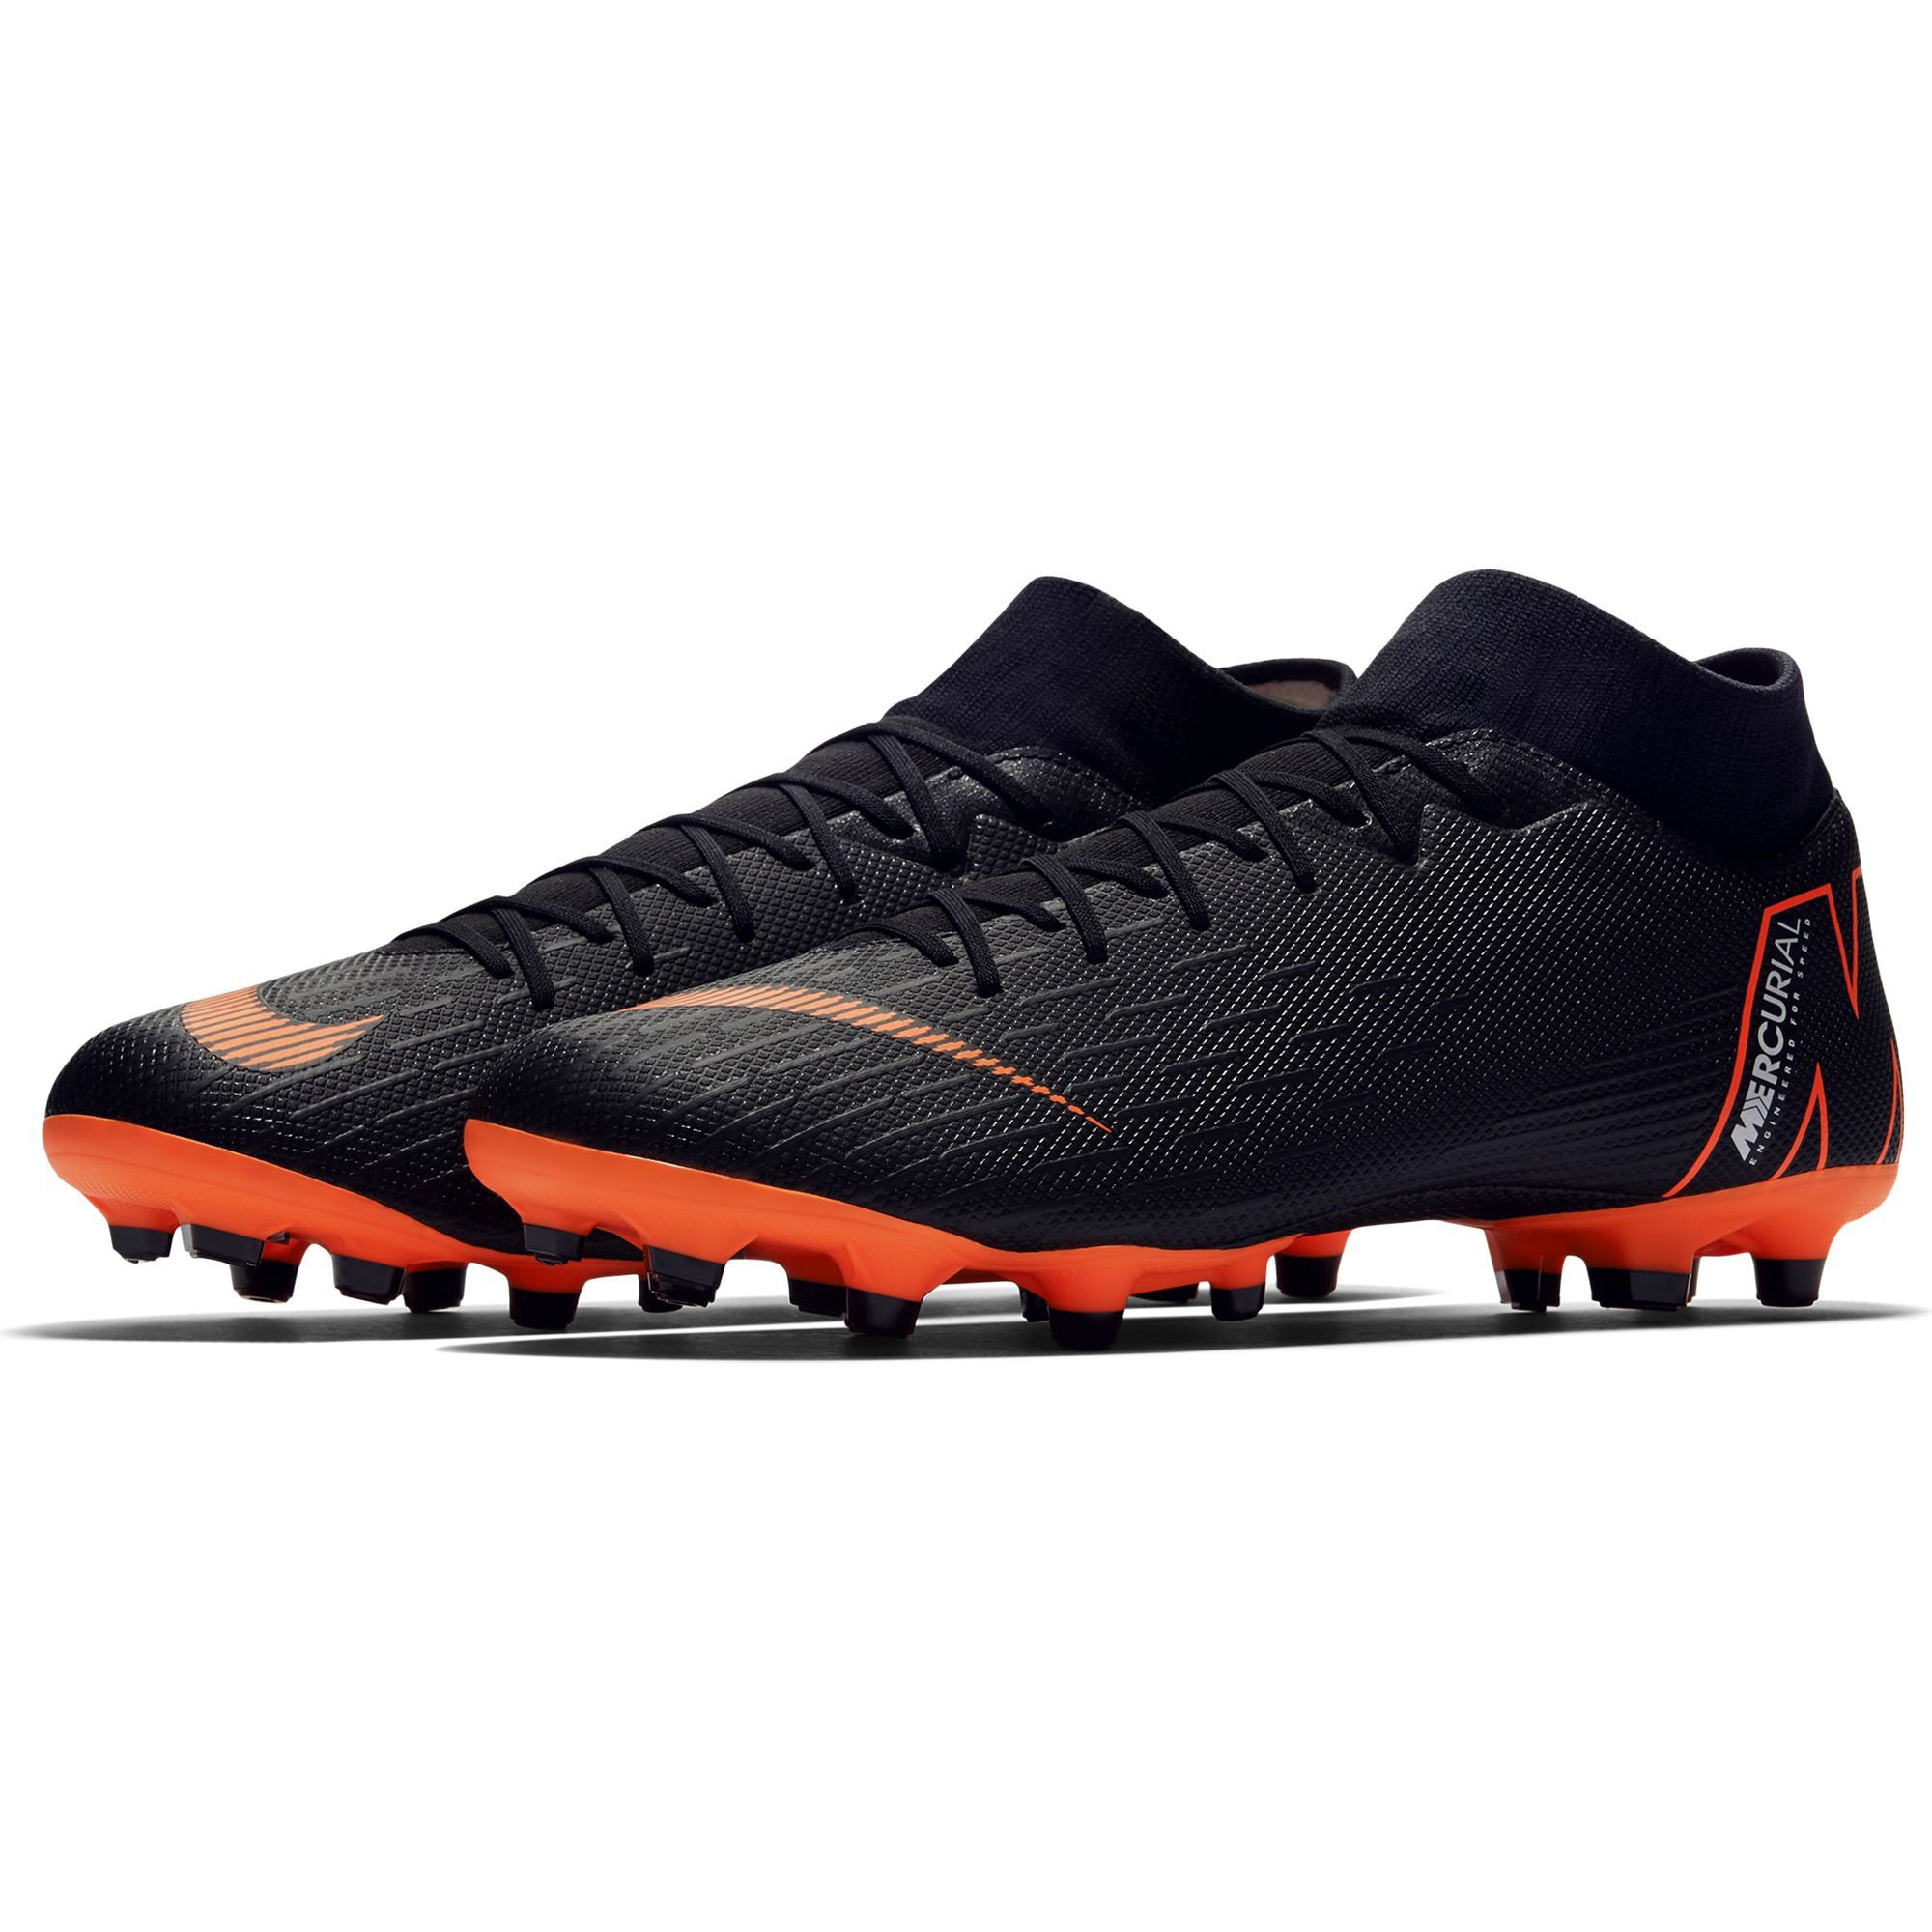 NIKE Men's Superfly 6 Academy MG Multi-Ground Soccer Cleat, Black/Total Orange-White, 11 by NIKE